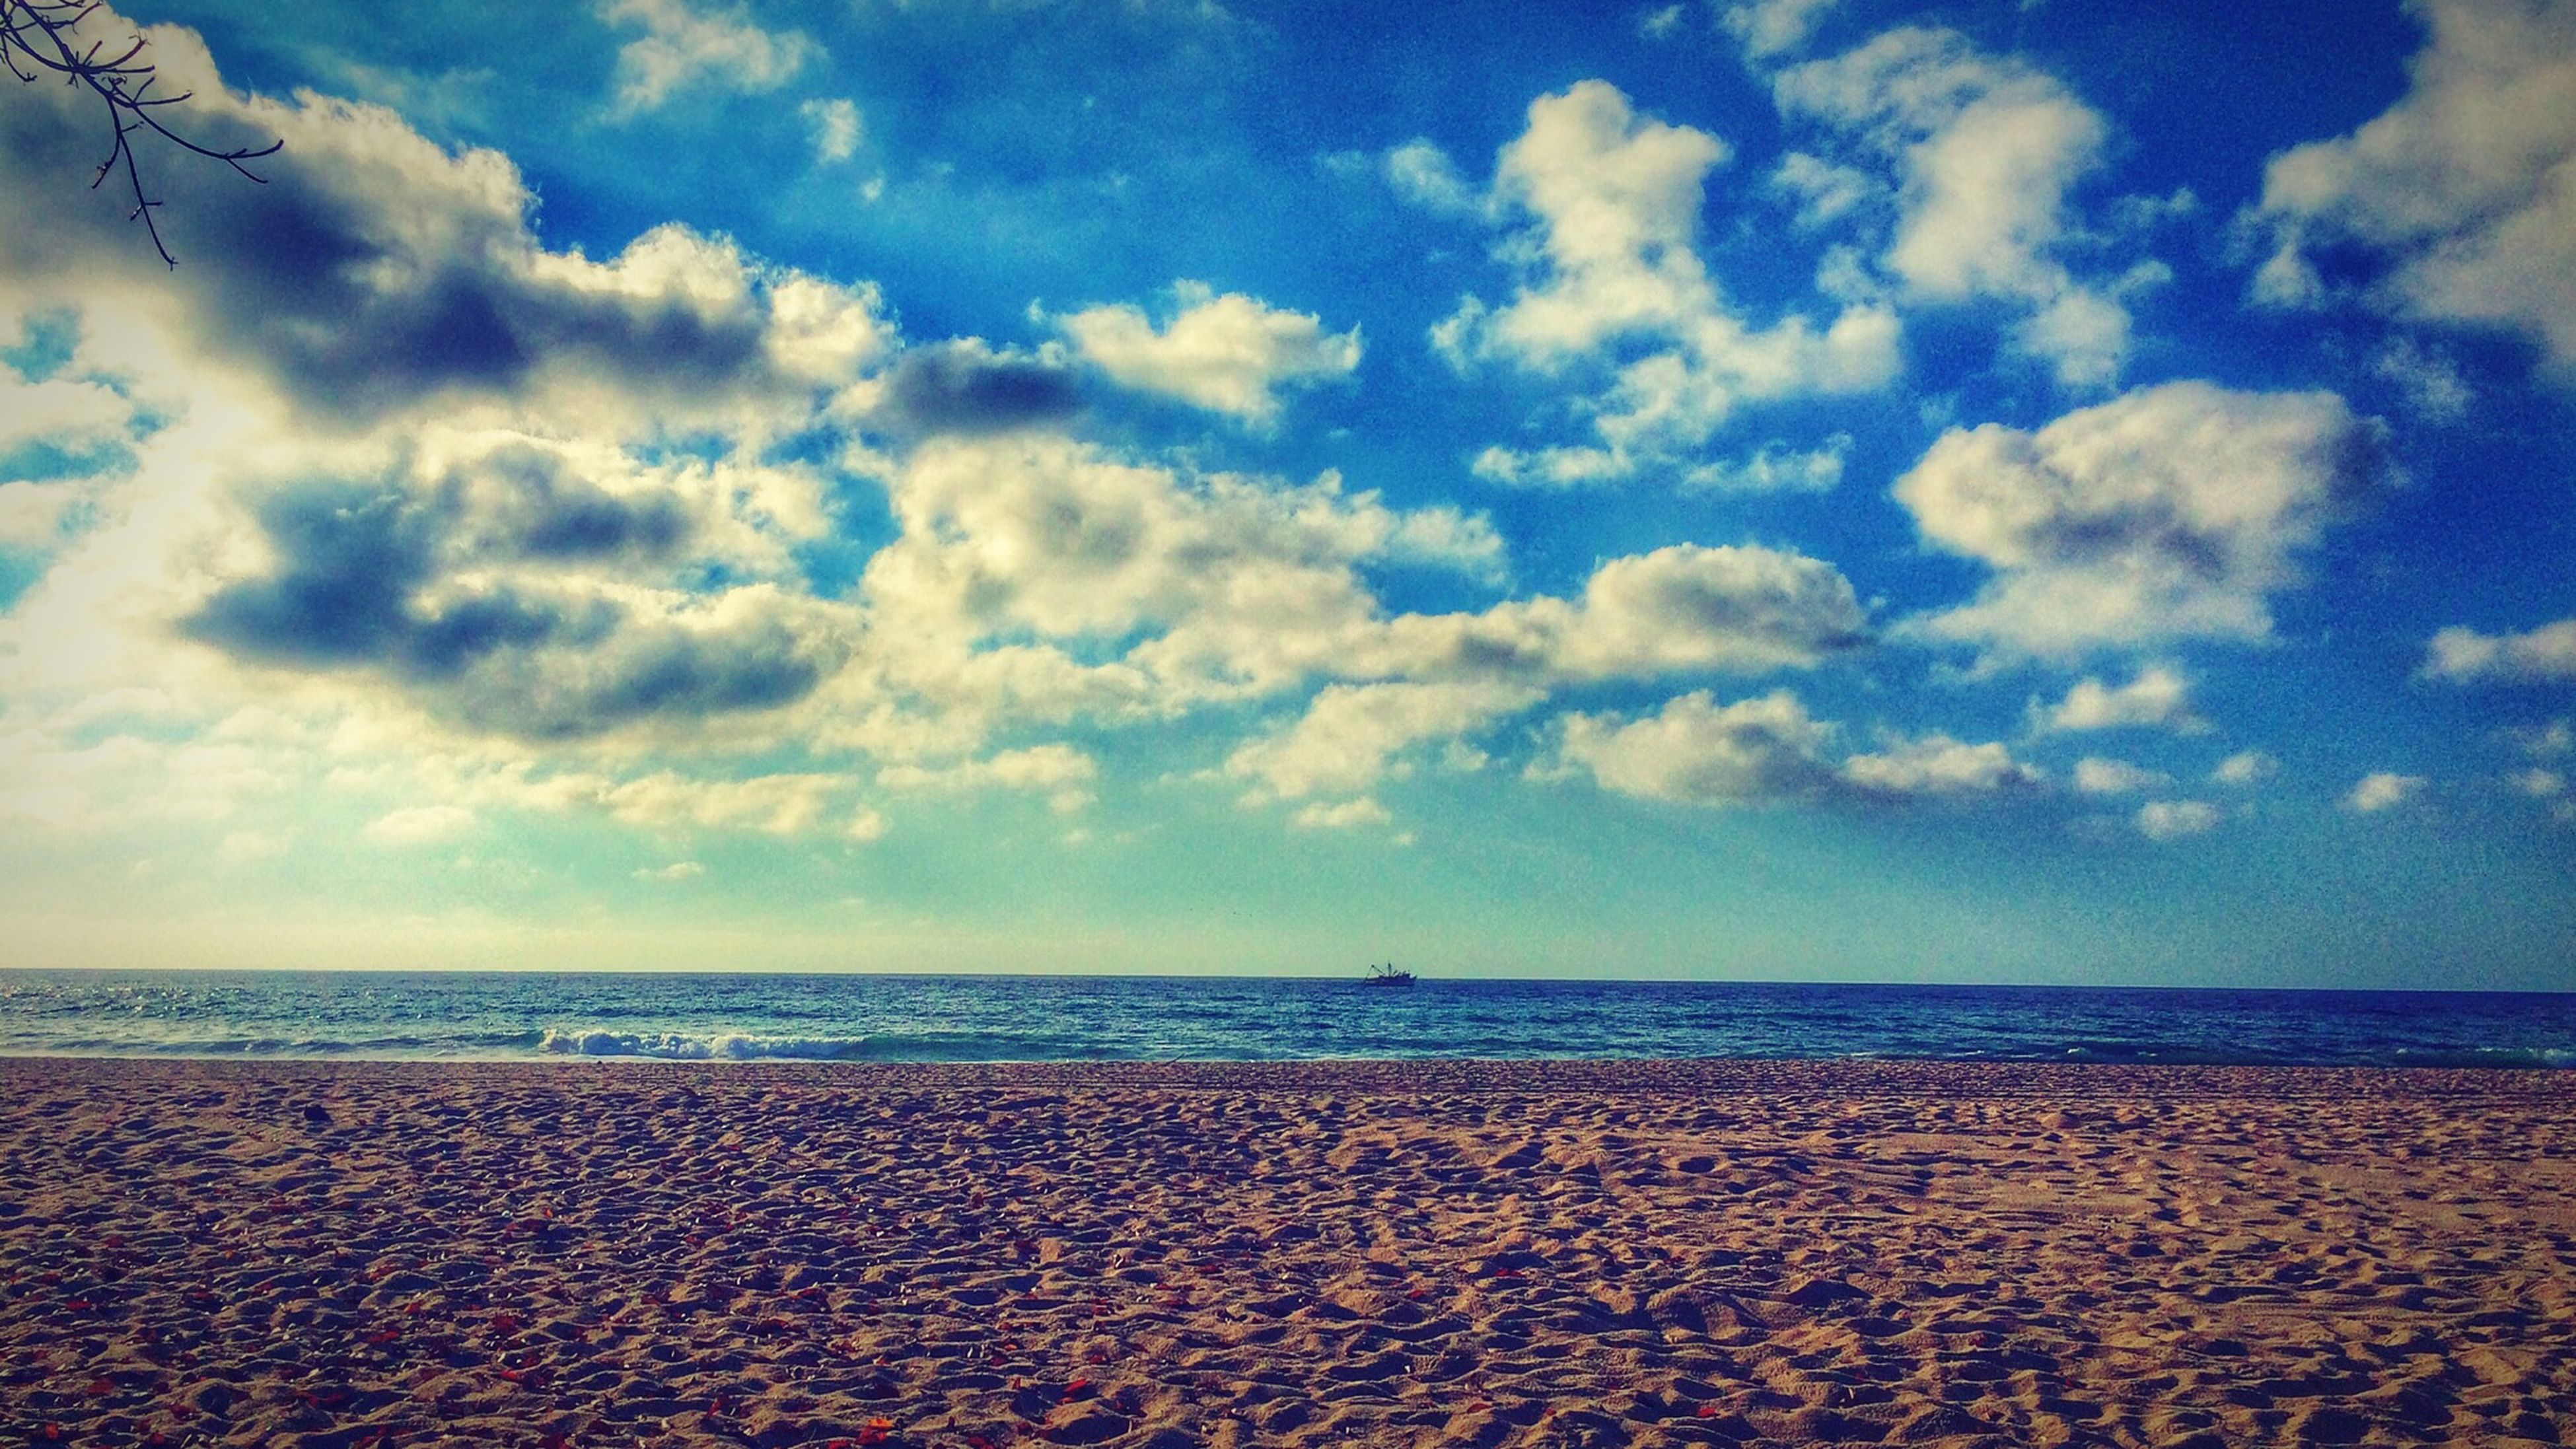 sea, beach, horizon over water, sky, water, shore, tranquil scene, scenics, tranquility, beauty in nature, sand, cloud - sky, nature, cloud, idyllic, cloudy, coastline, calm, remote, outdoors